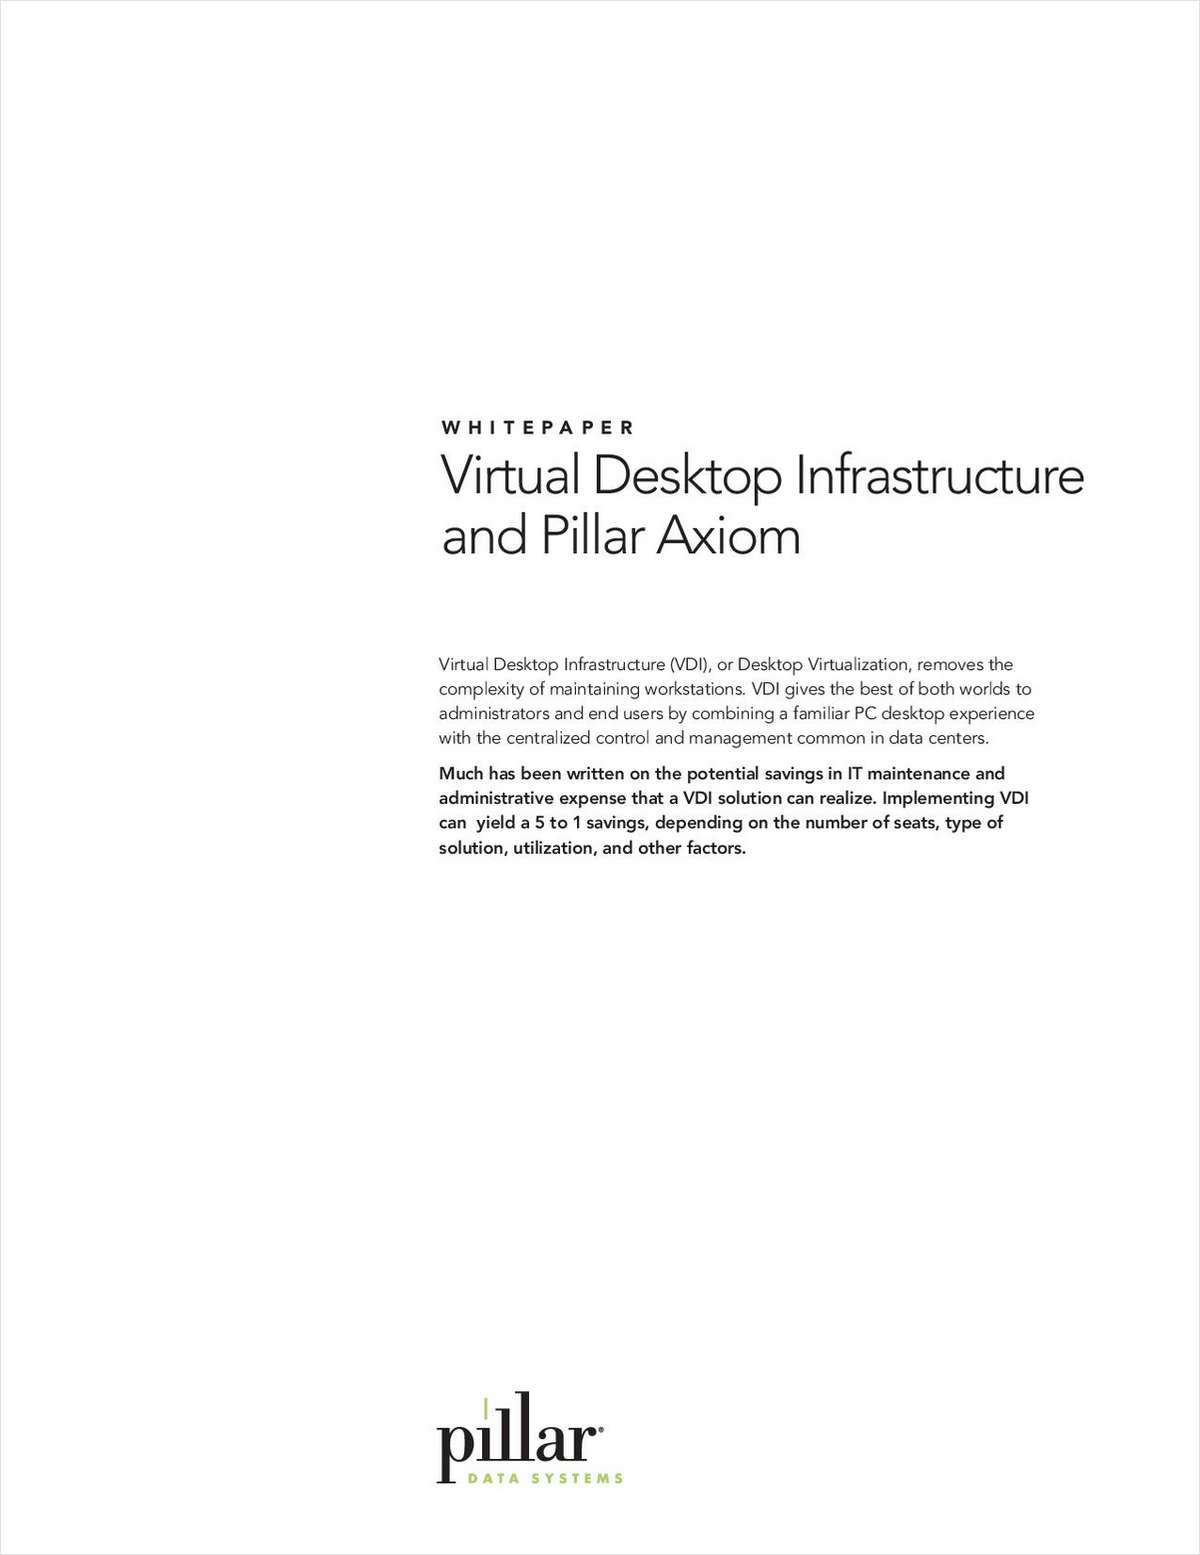 Benefits of a Virtual Desktop Infrastructure